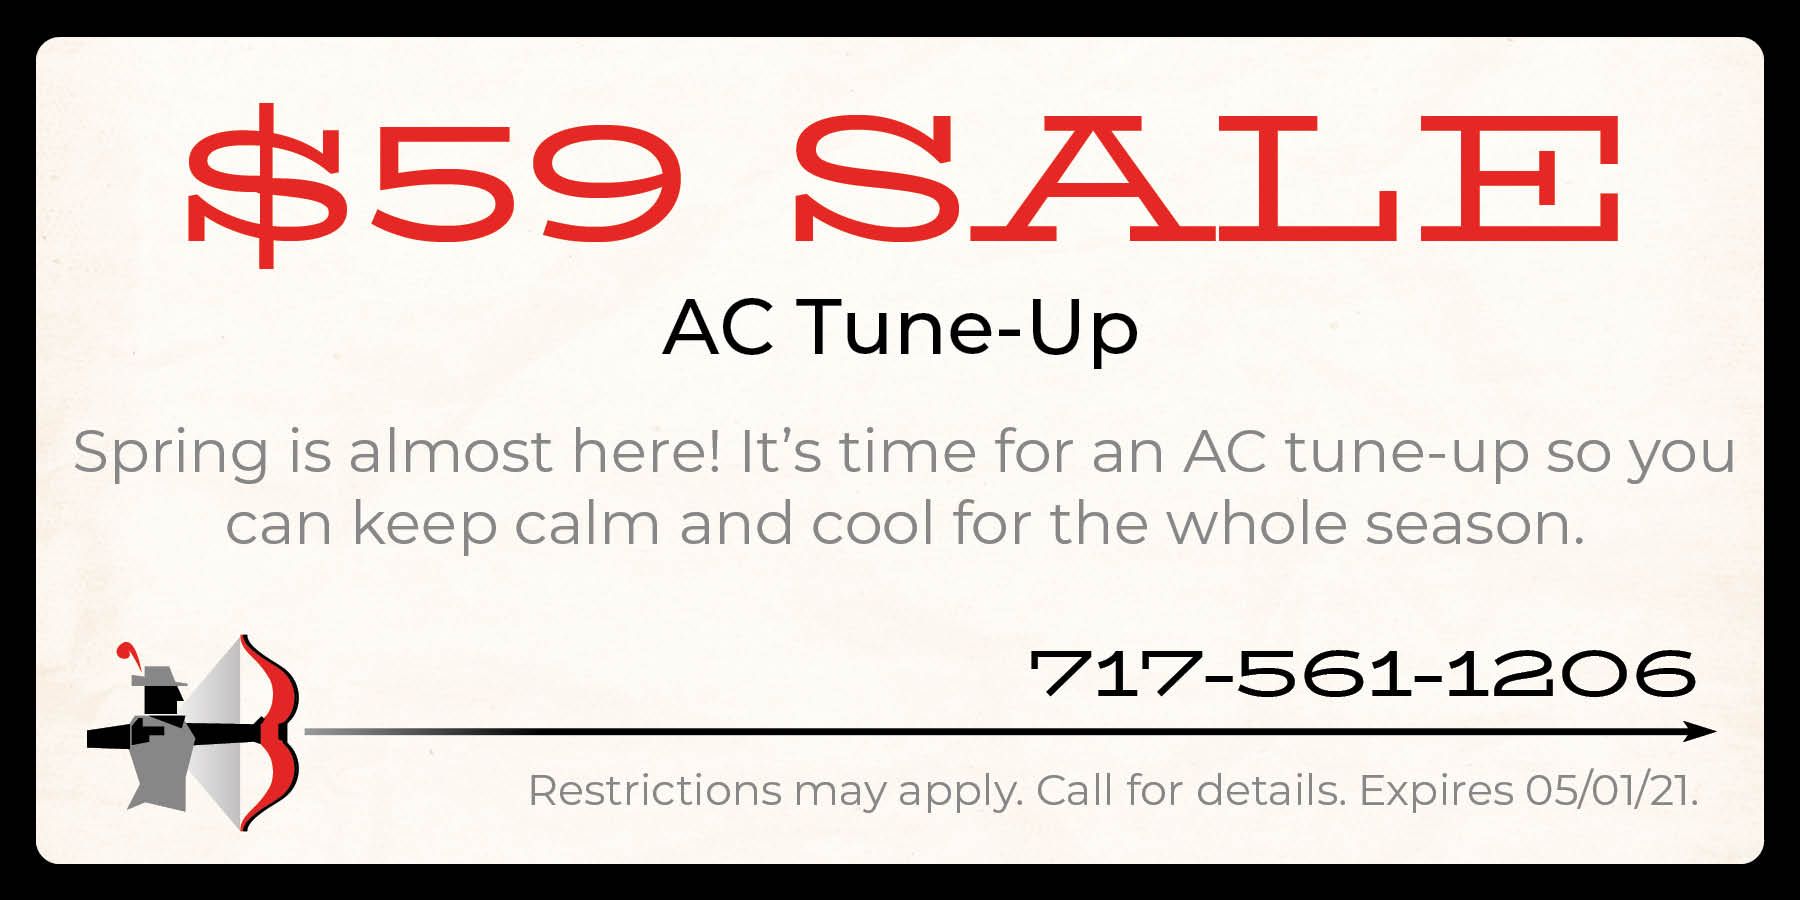 $59 AC tune up special.